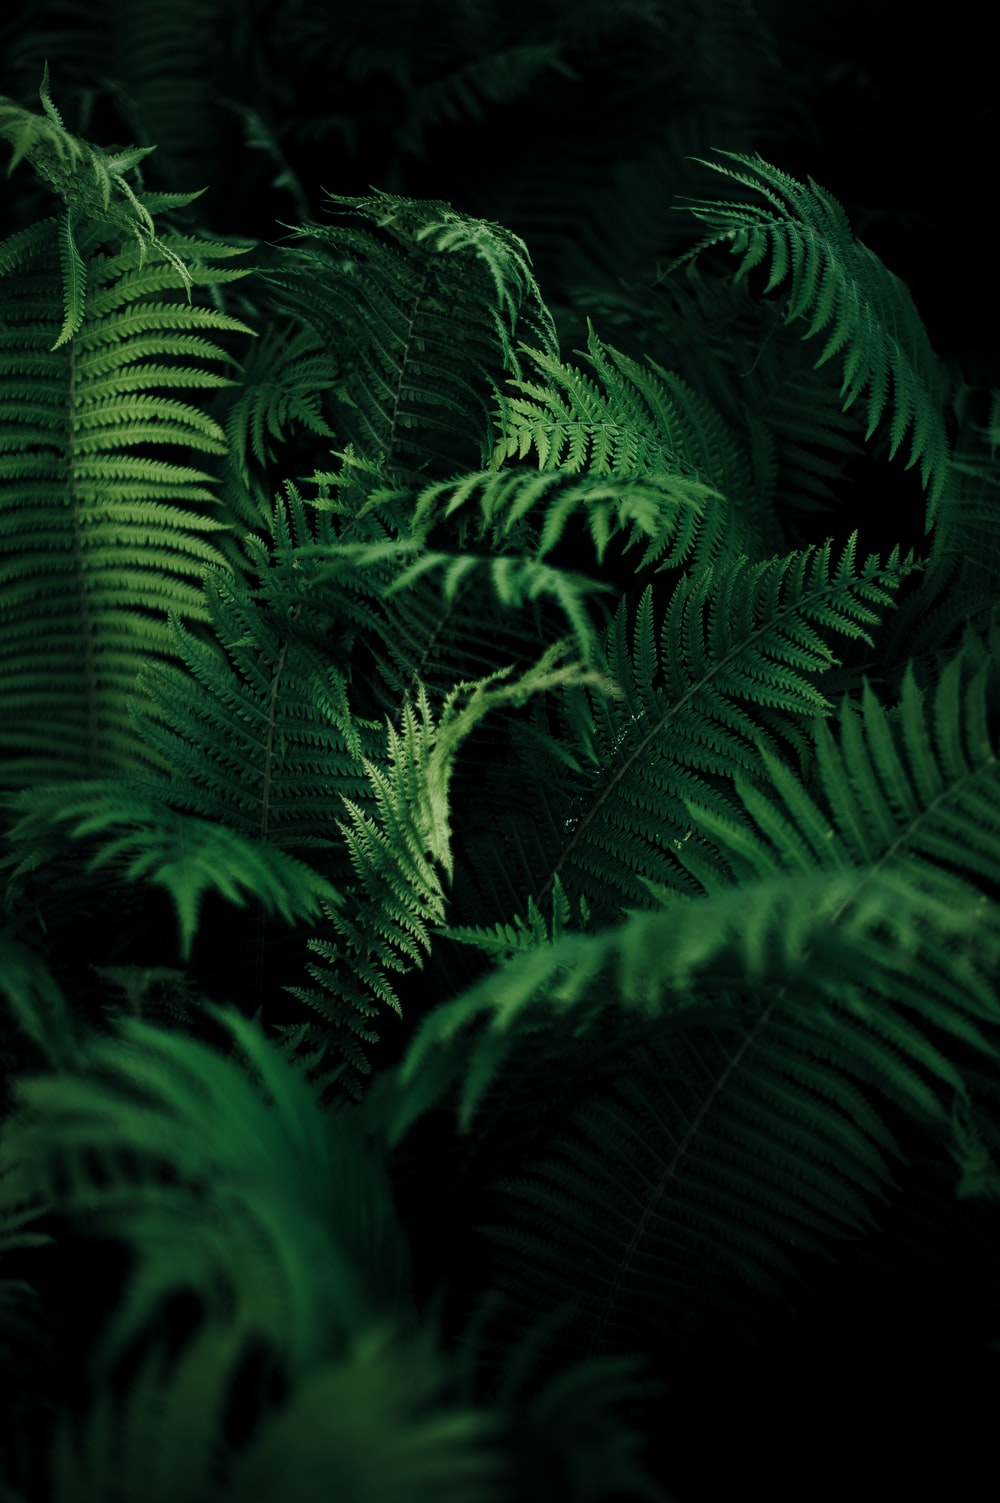 green leafed plant